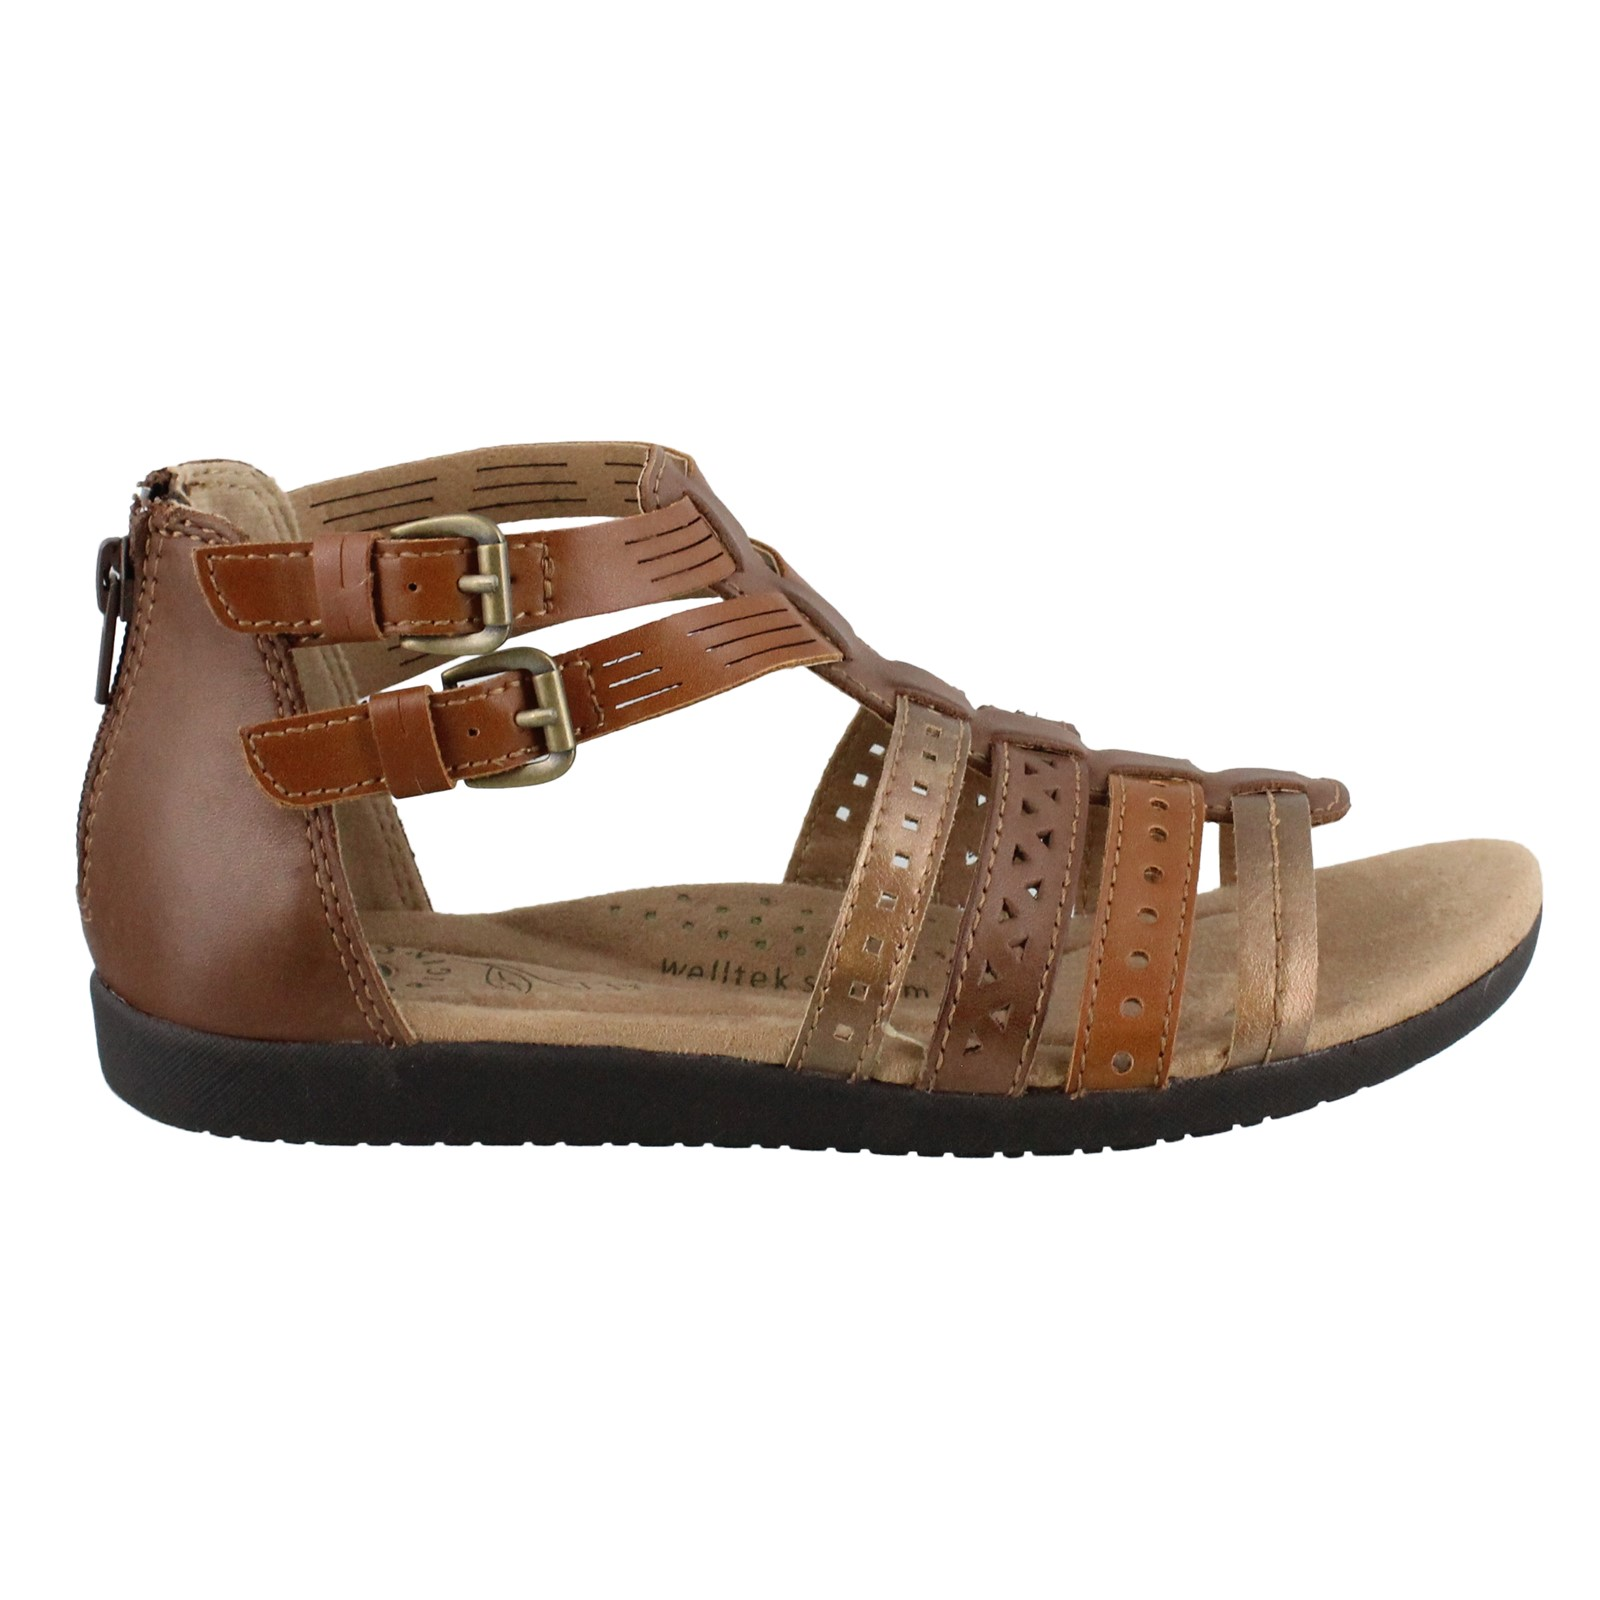 Women's Earth Origins, Harlin Sandals